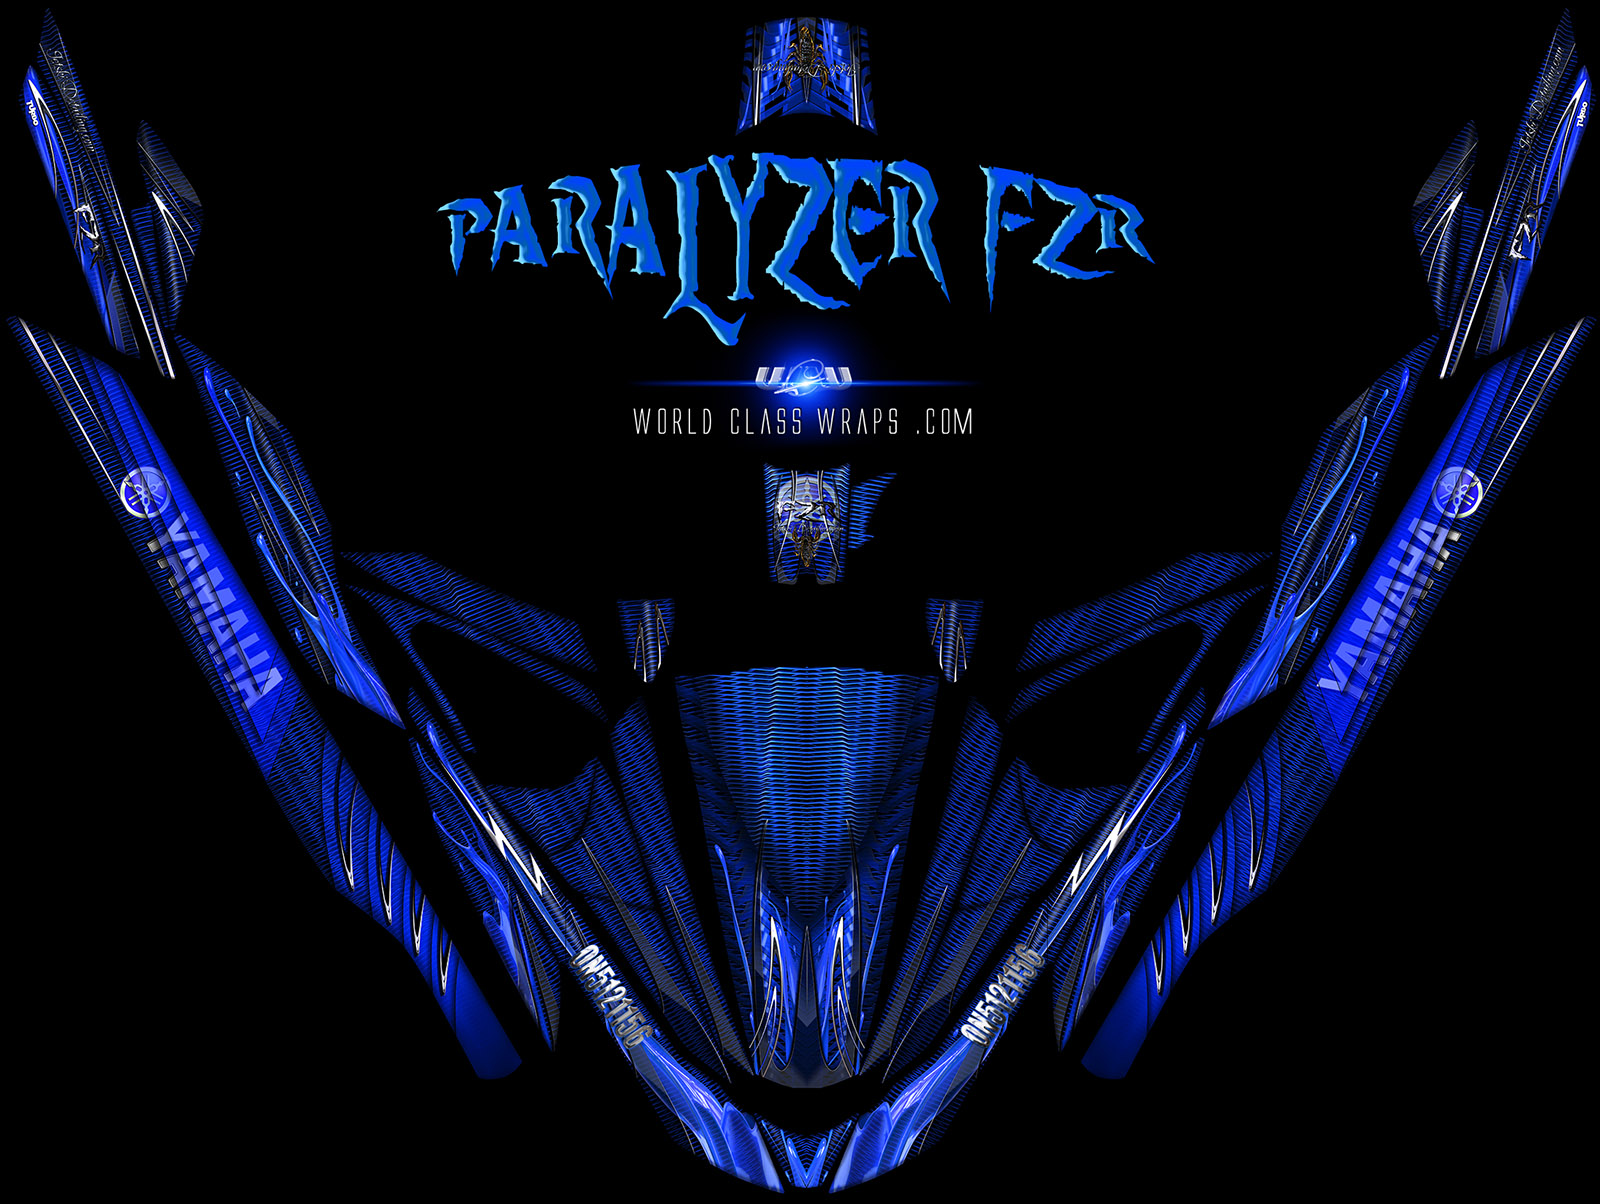 yamaha fzr fzs paralyzer graphics wrap